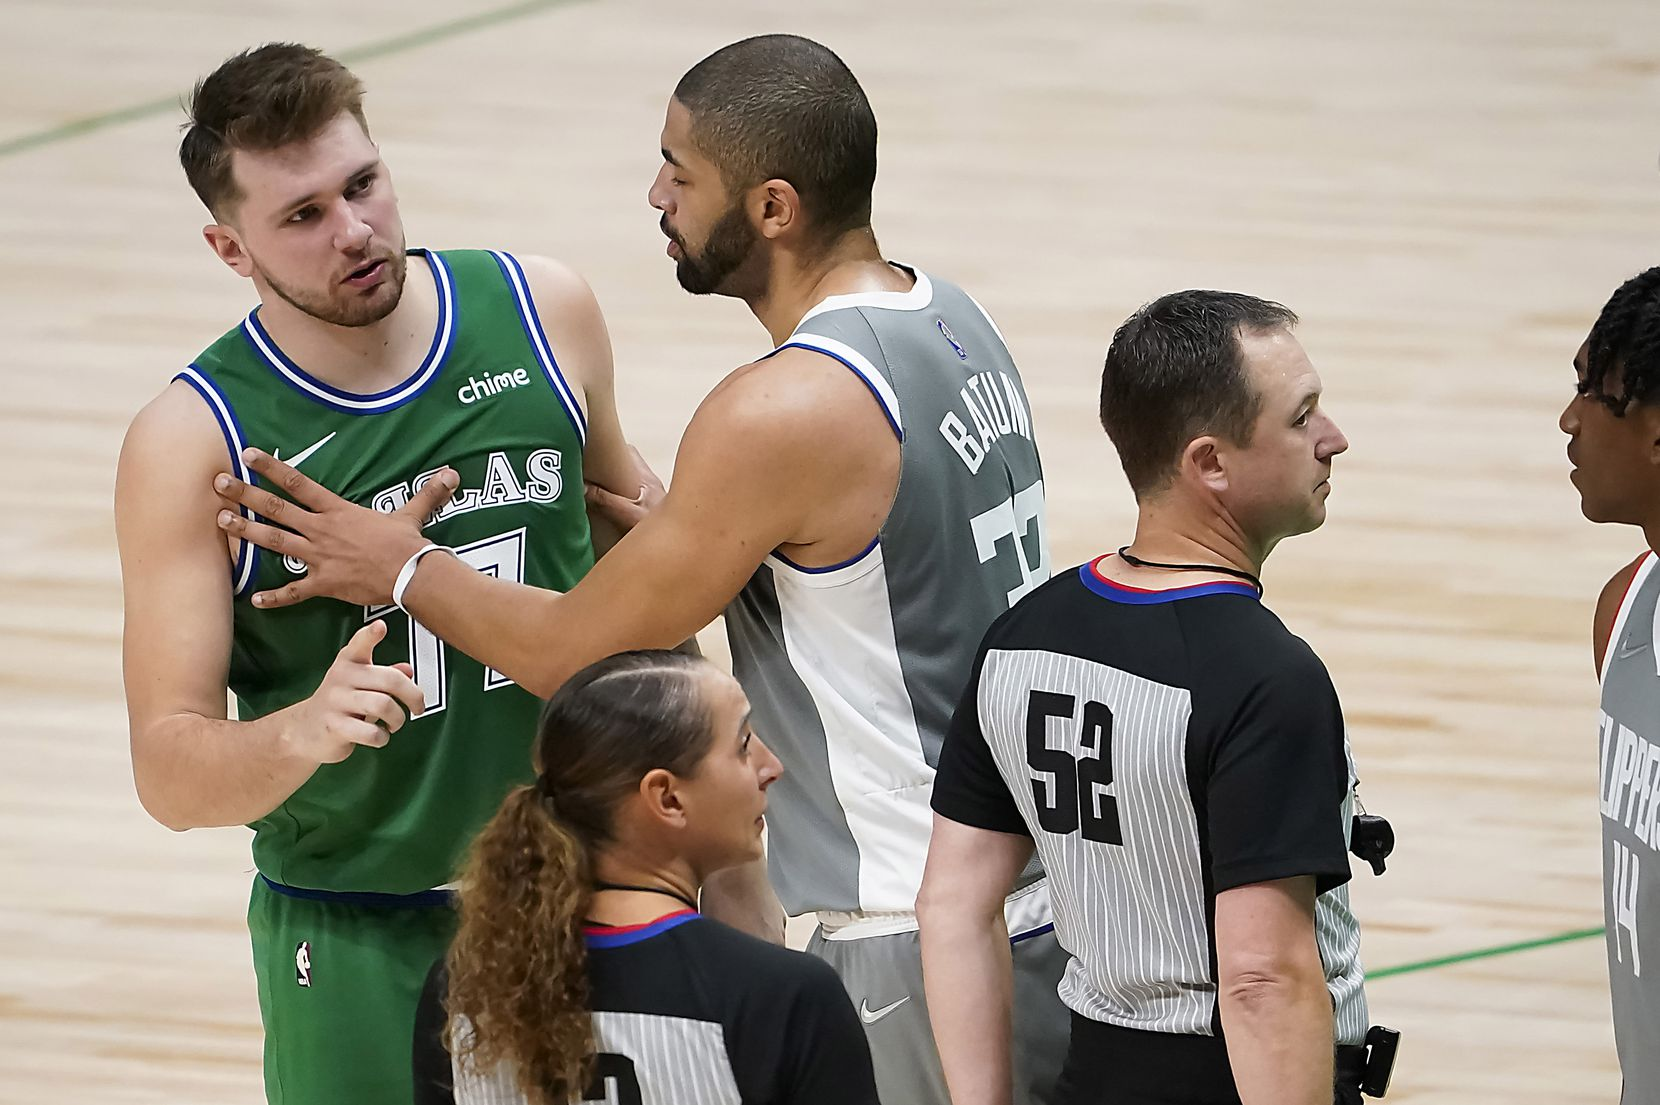 LA Clippers forward Nicolas Batum (33) steps in to separate Dallas Mavericks guard Luka Doncic (77) from Clippers guard Terance Mann (14) as they exchange words during the second half of an NBA basketball game at American Airlines Center on Wednesday, March 17, 2021, in Dallas.